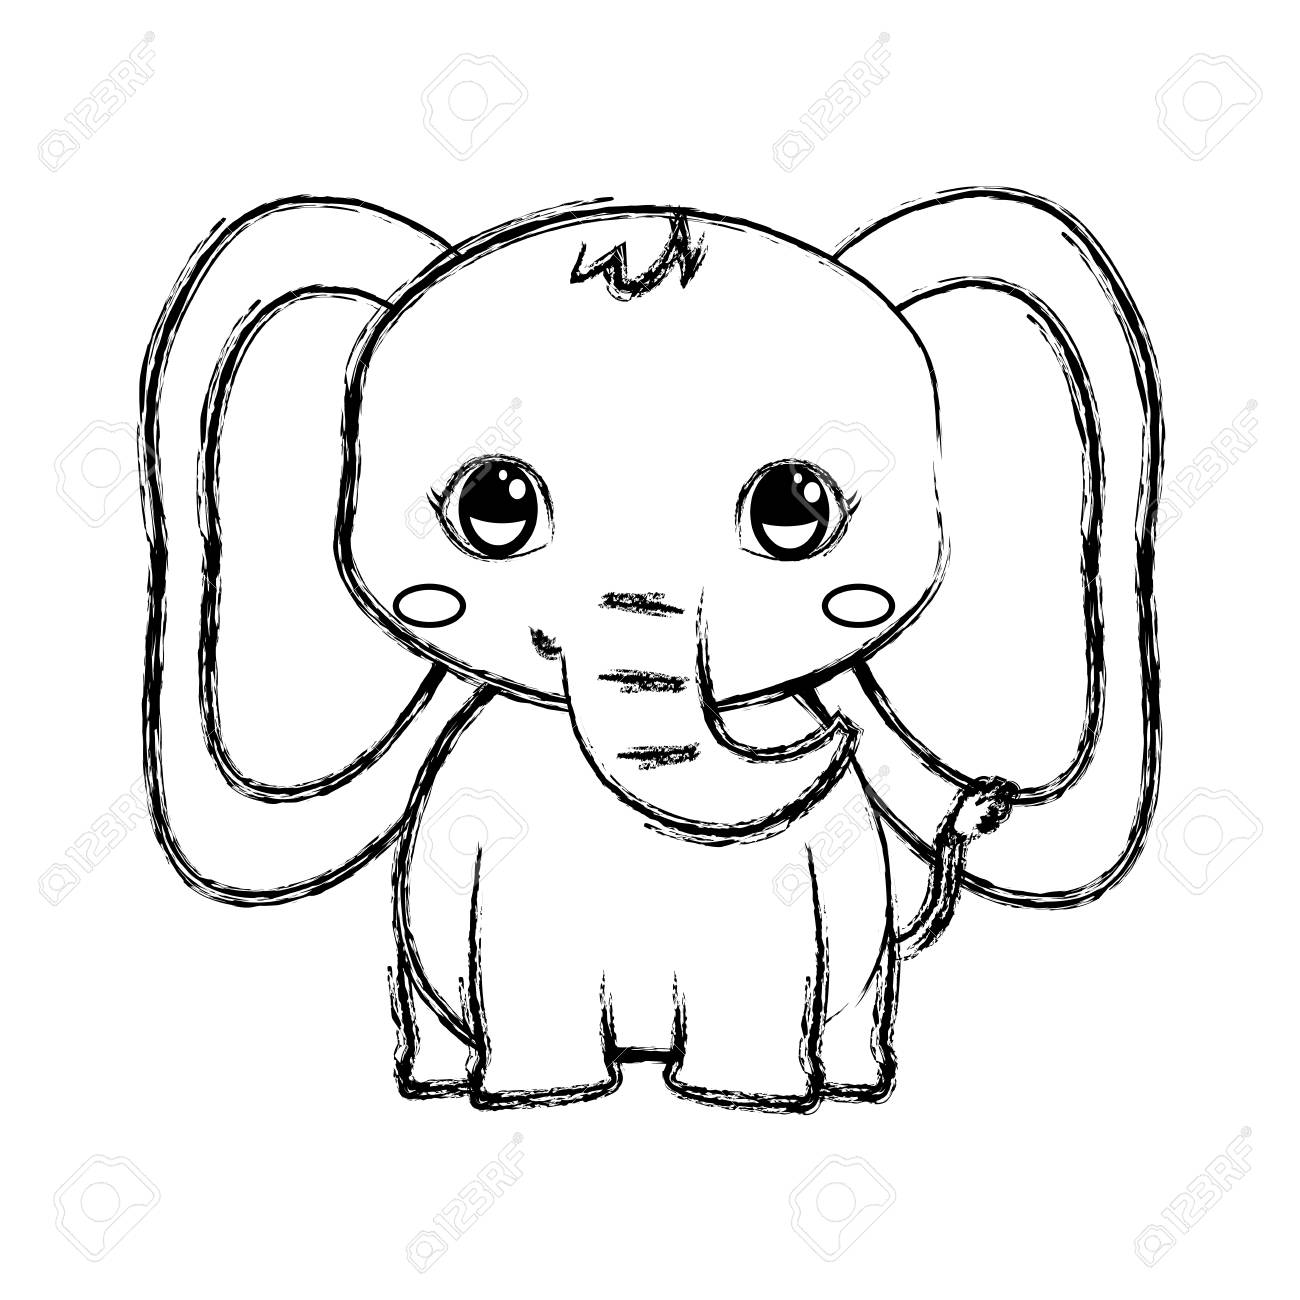 1300x1300 Cute Elephant Line Drawing Pictures Simple Sketches With Balloon